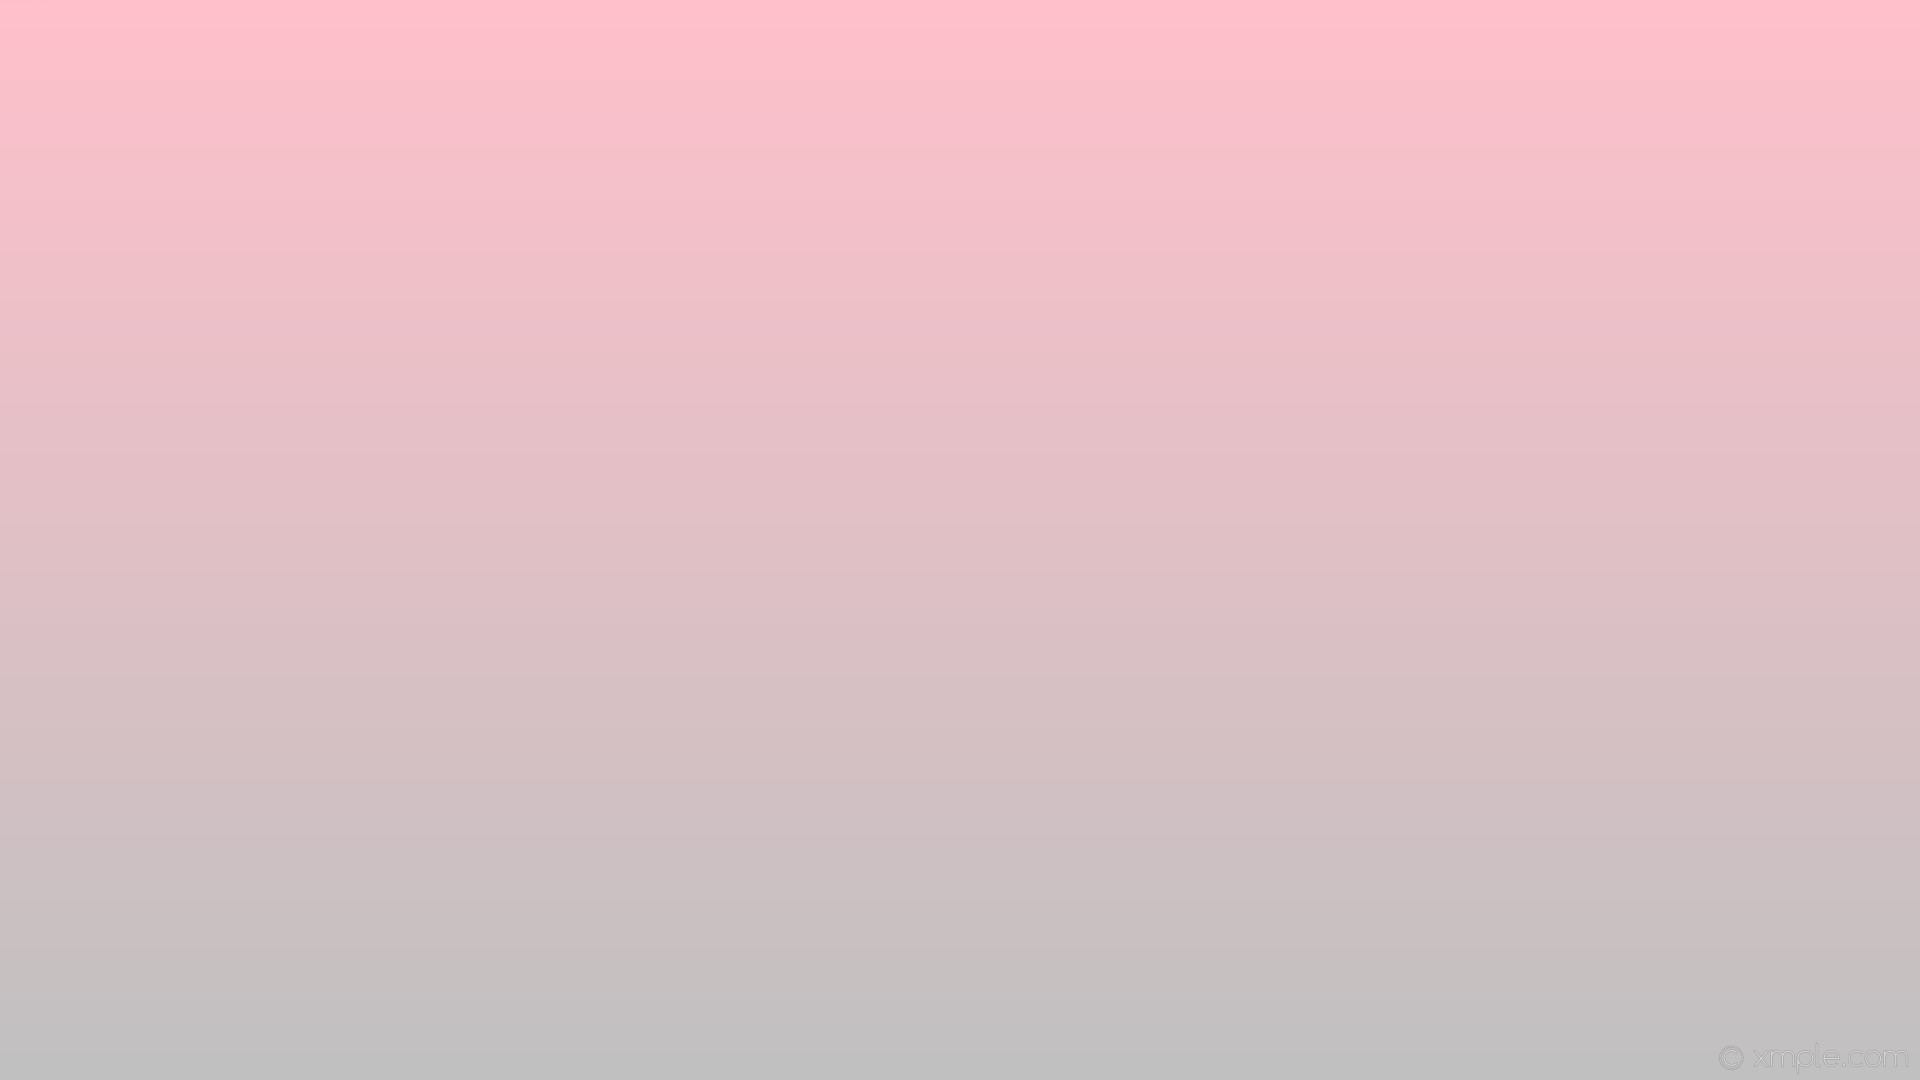 1920x1080 wallpaper pink linear grey gradient silver #ffc0cb #c0c0c0 90°